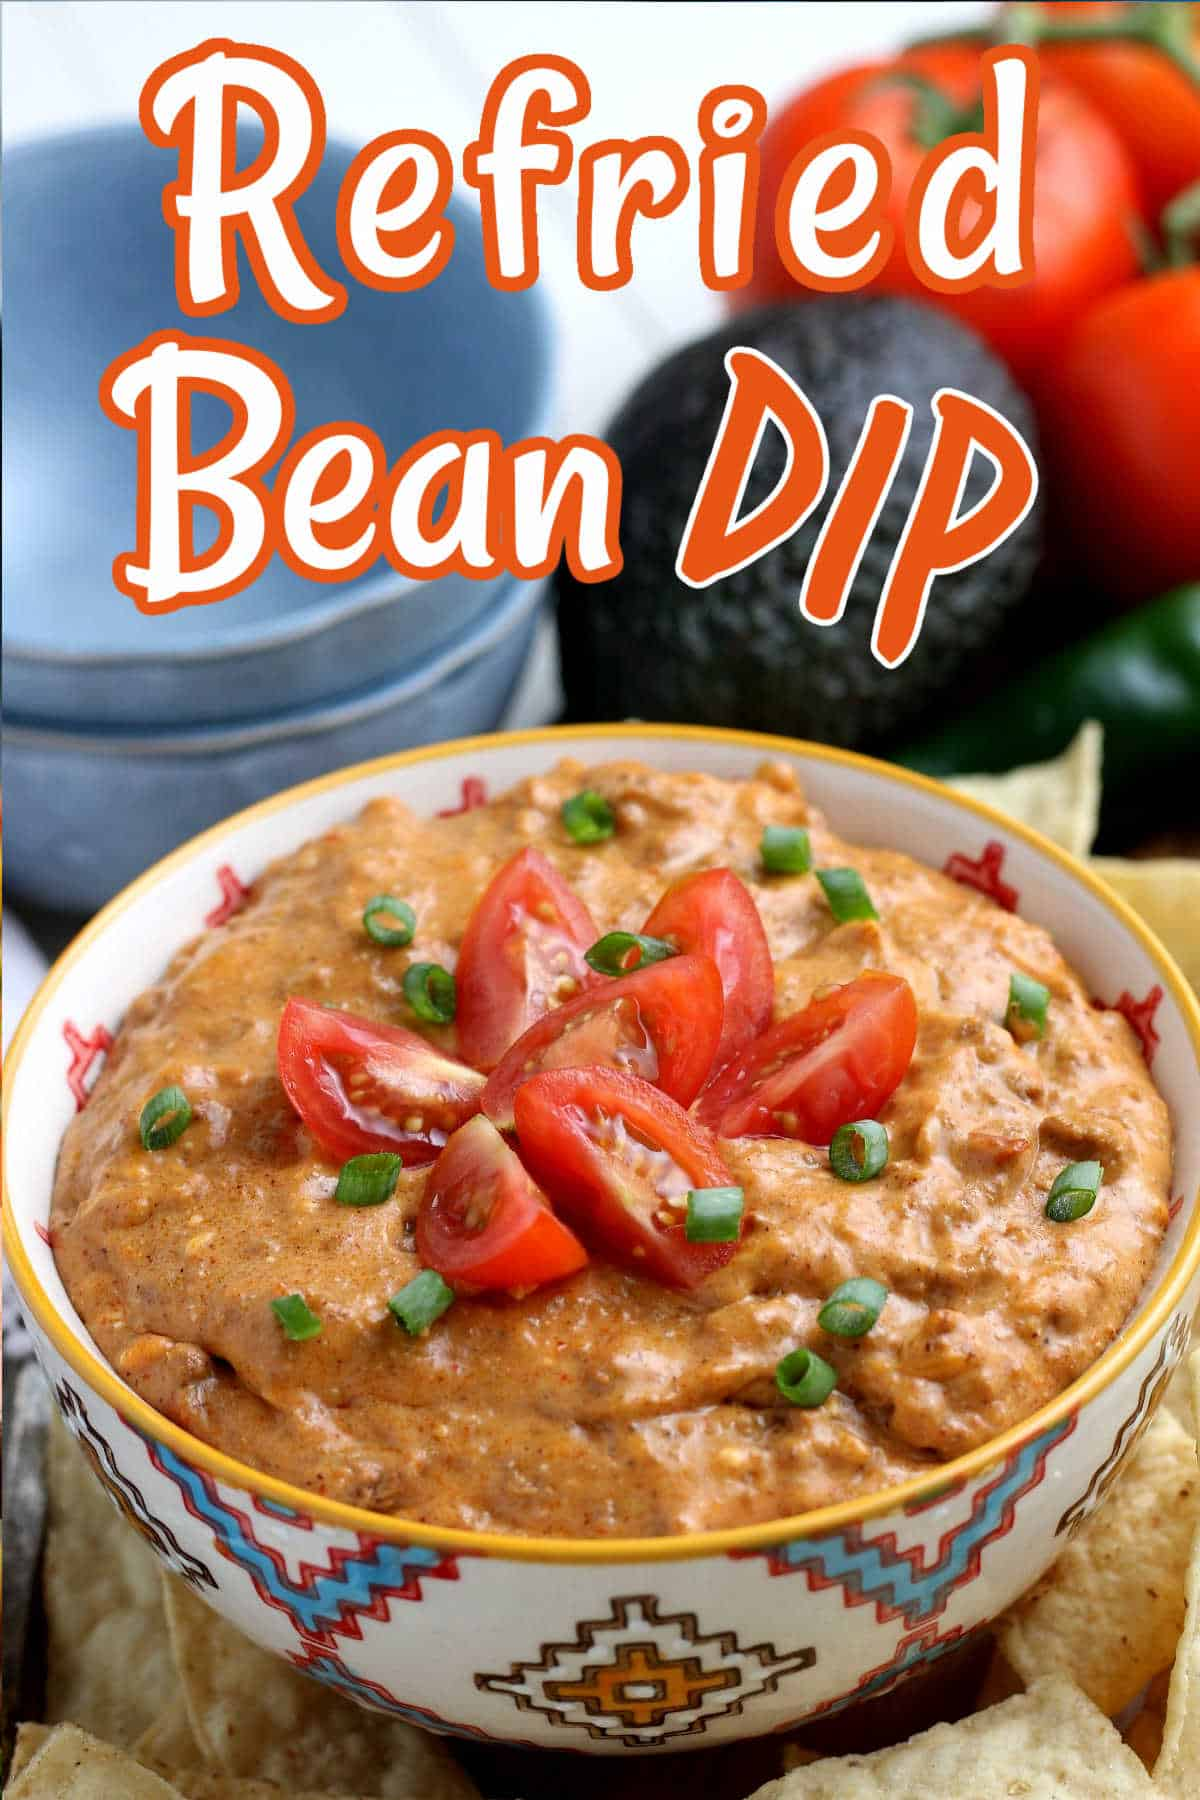 Refried Bean dip is in a bowl with tomato slices and chives on top.